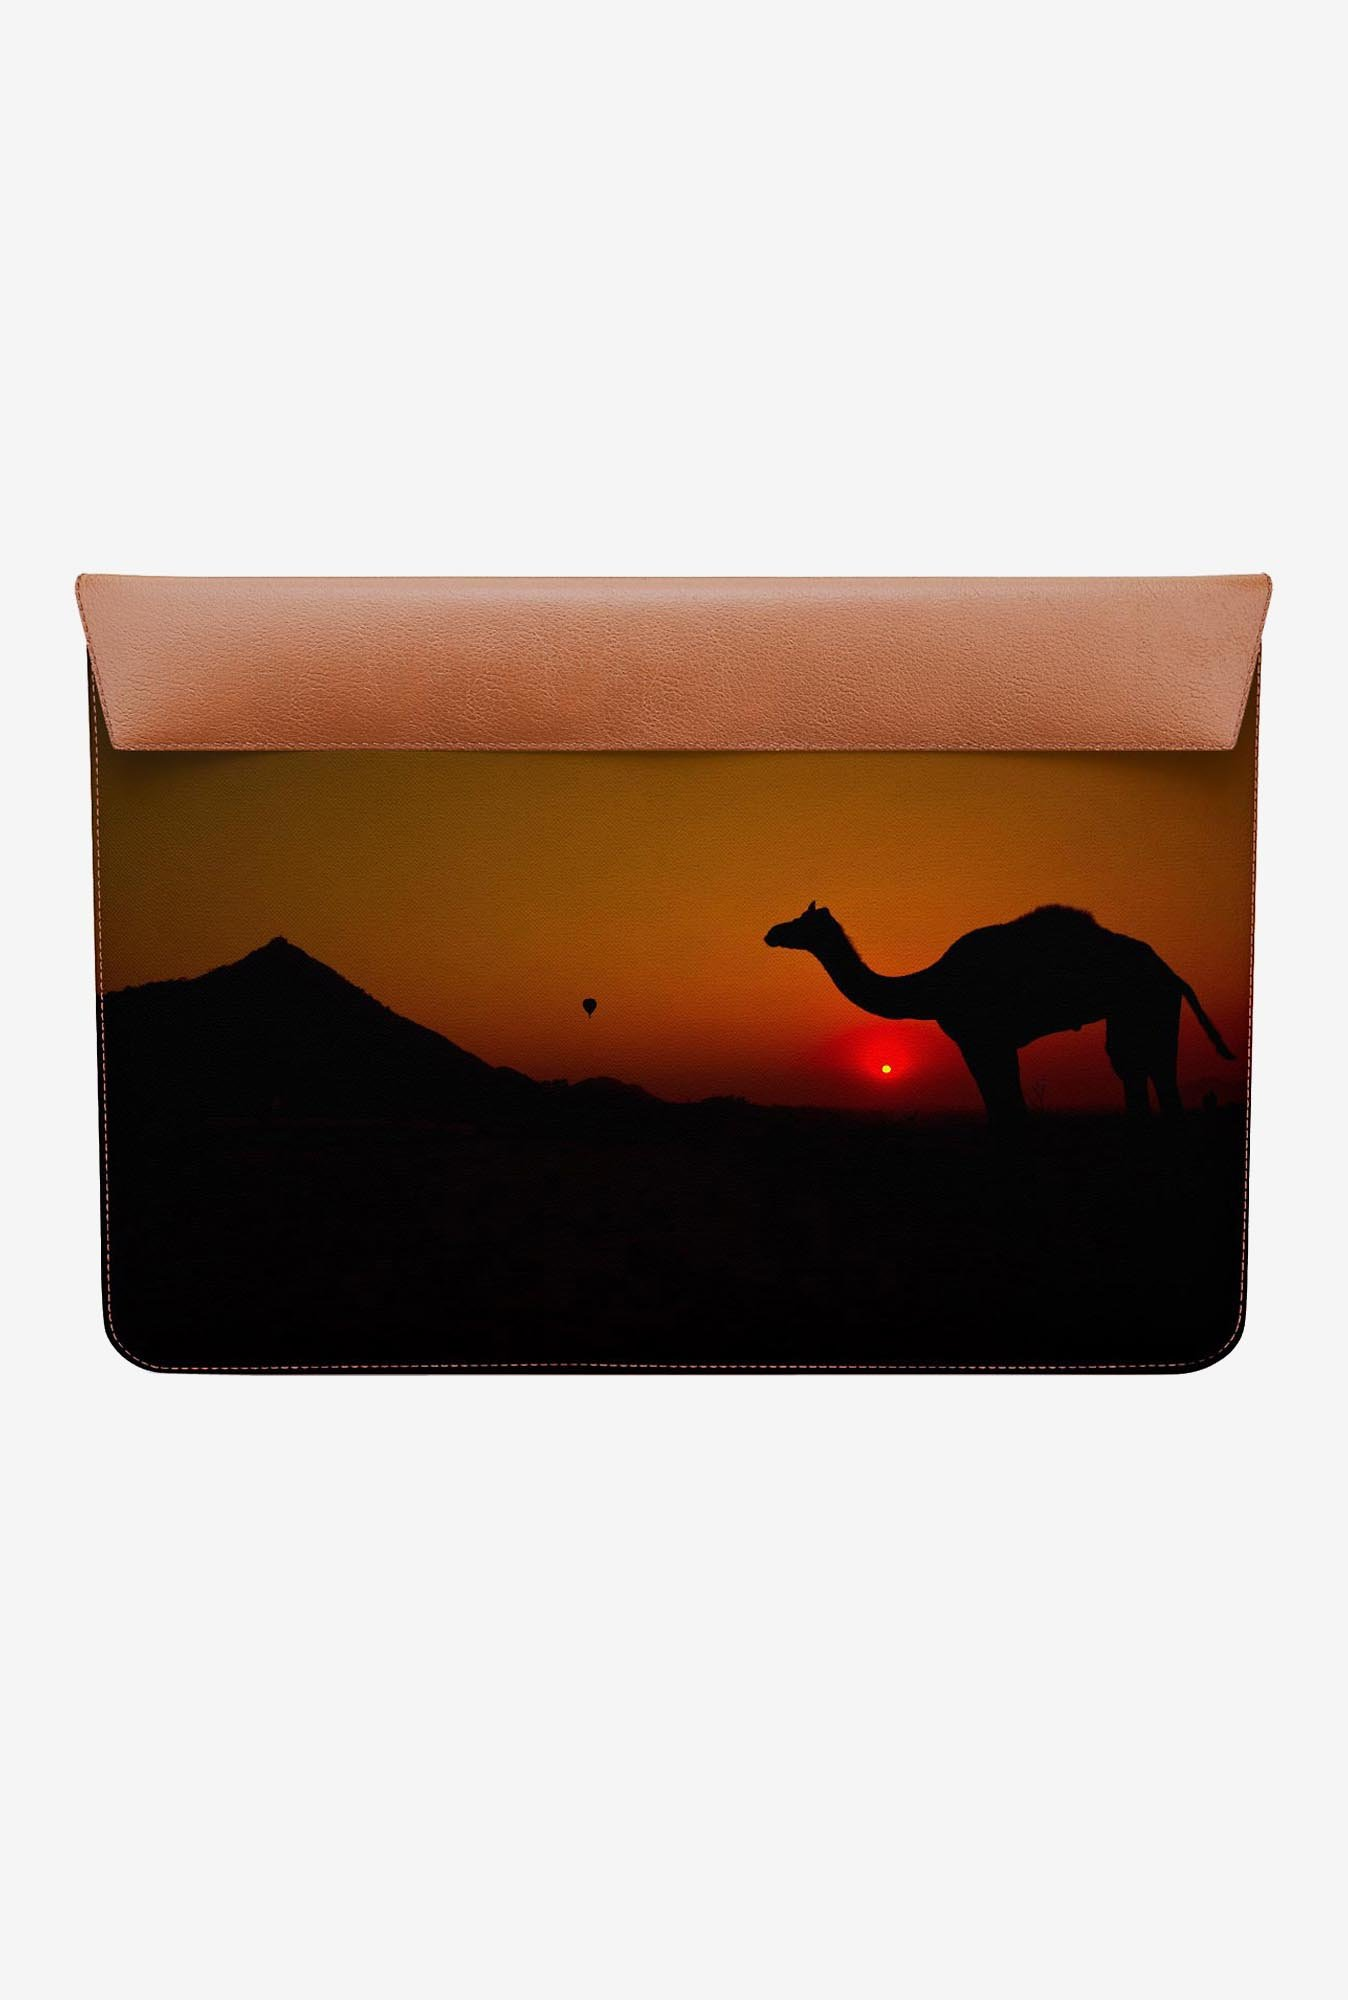 DailyObjects Pushkar Balloon MacBook Air 13 Envelope Sleeve